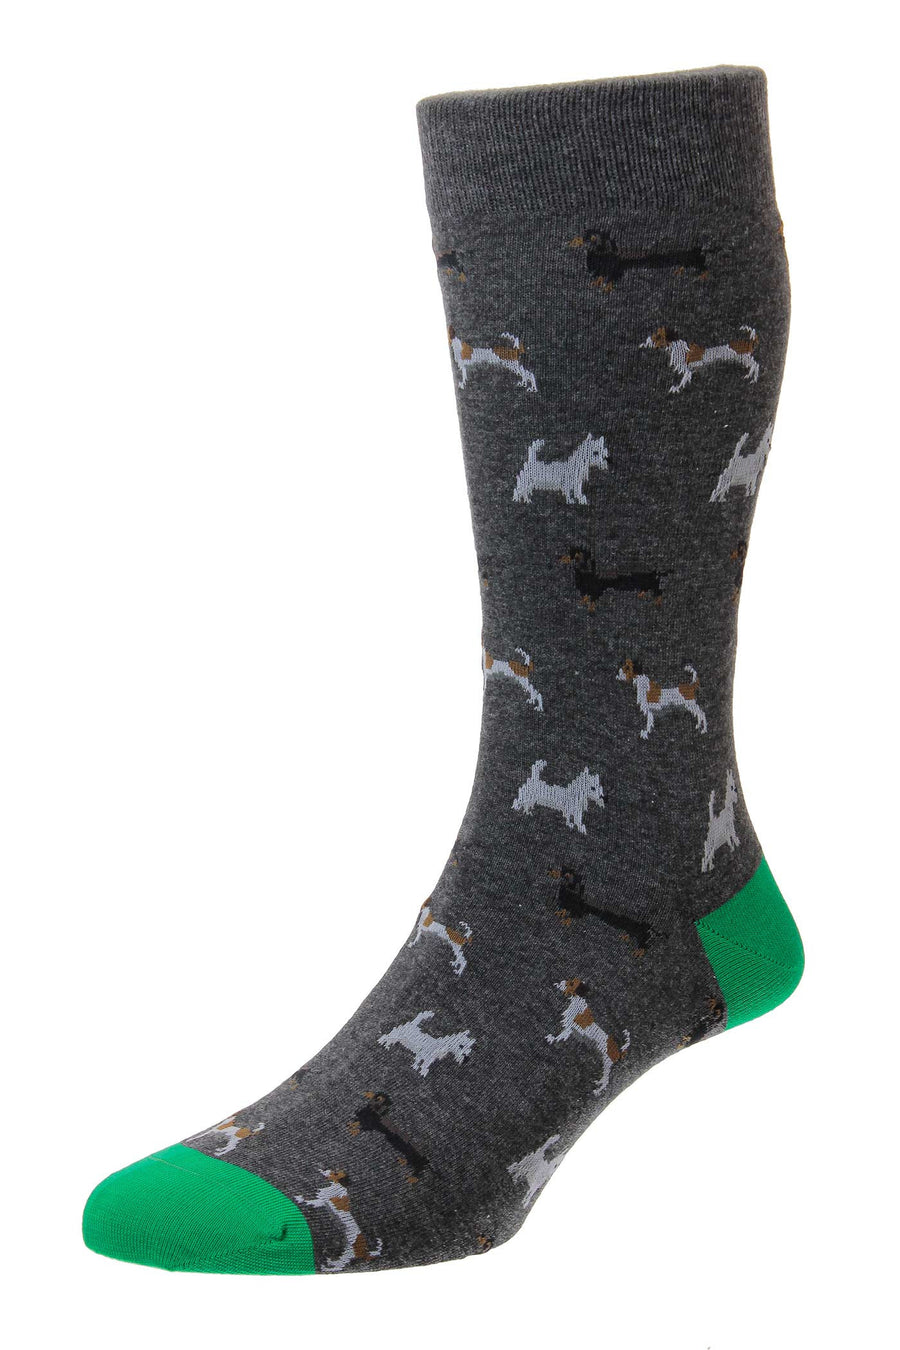 Bertie Dogs Print Organic Cotton Sock